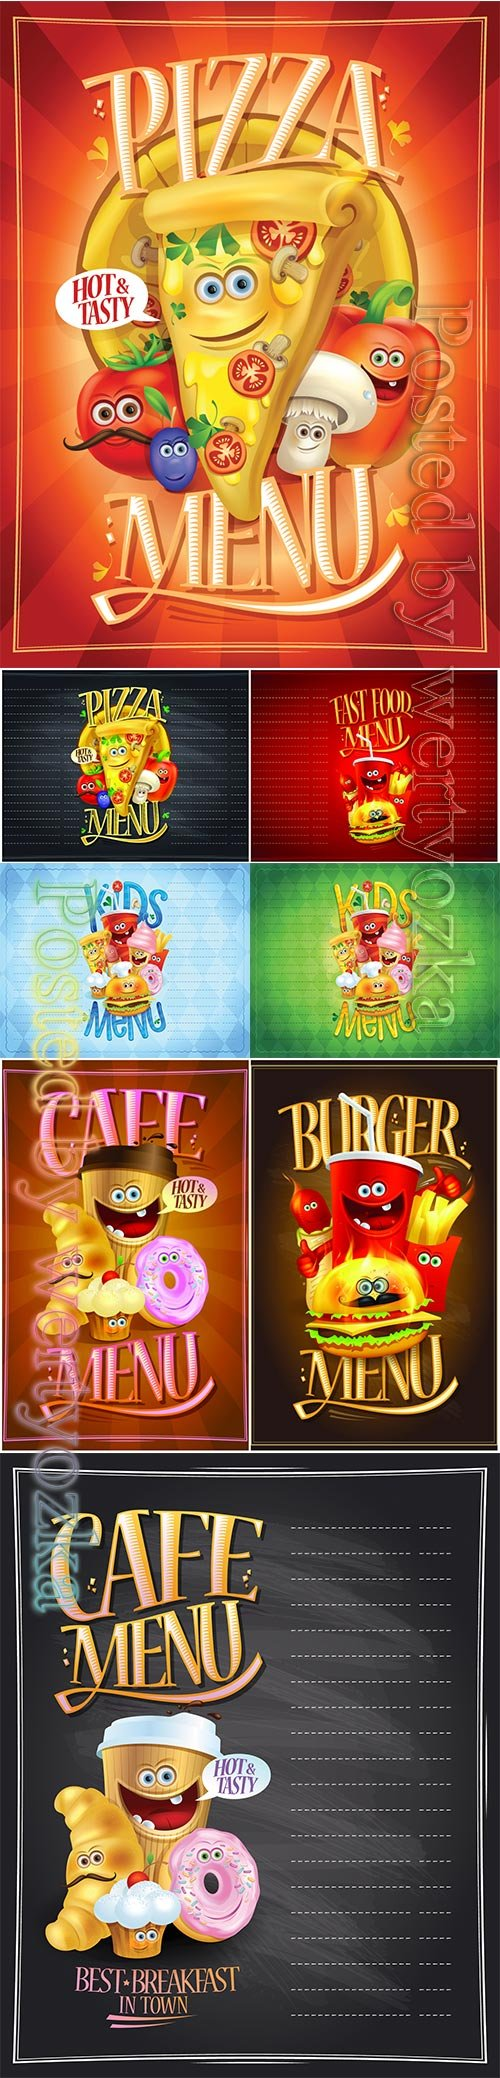 Kids menu list design concept with hot dog, burger, french fries, pizza, donut, ice cream, muffin and drink